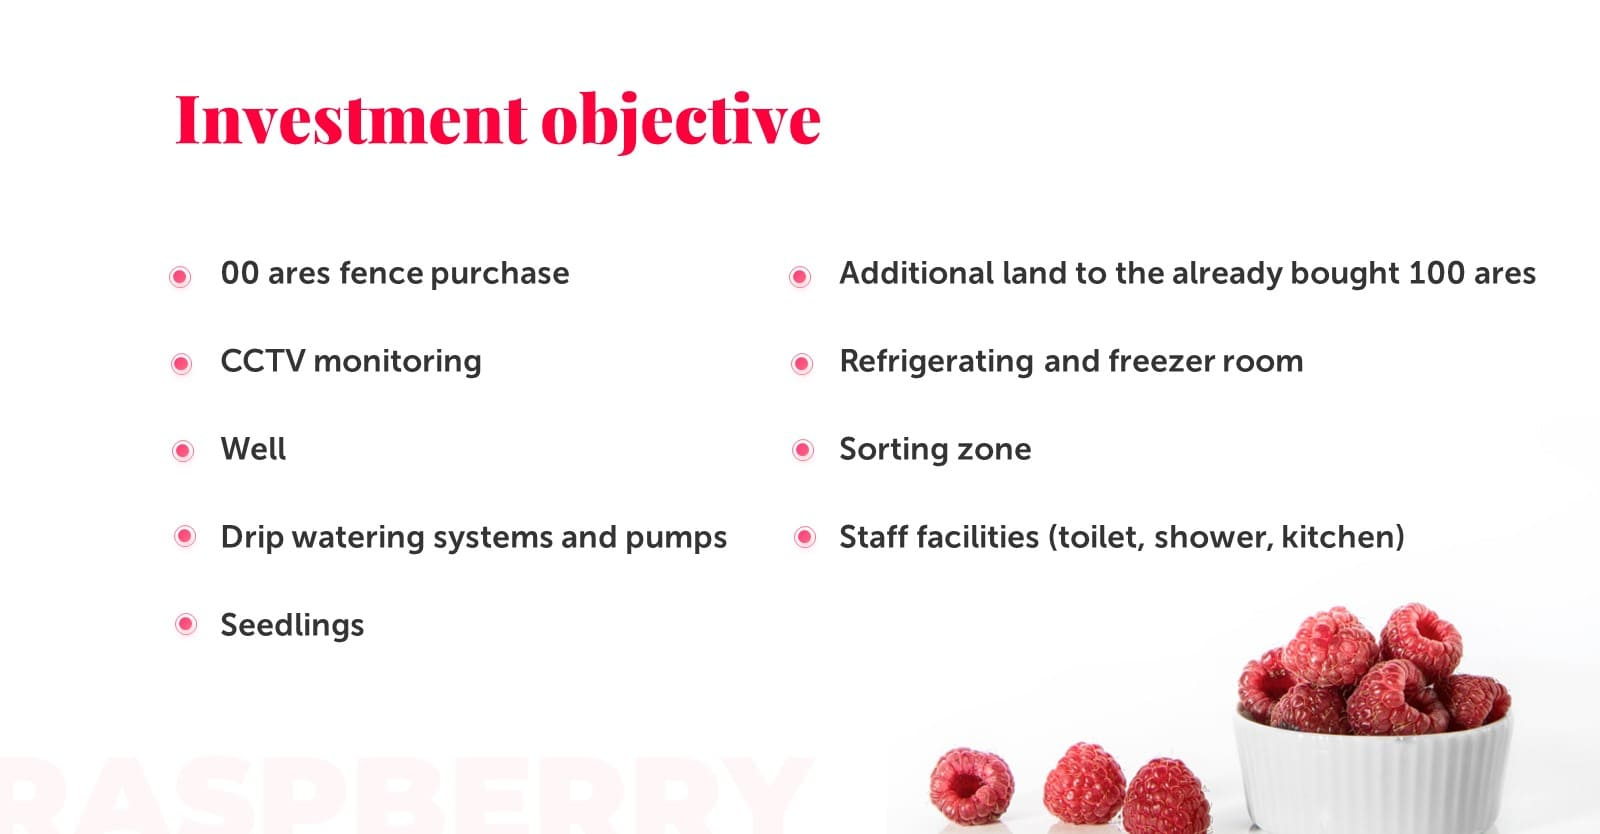 Feminine Presentation: Raspberry Powerpoint, Google Slides, Figma & Keynote Templates - Slide18